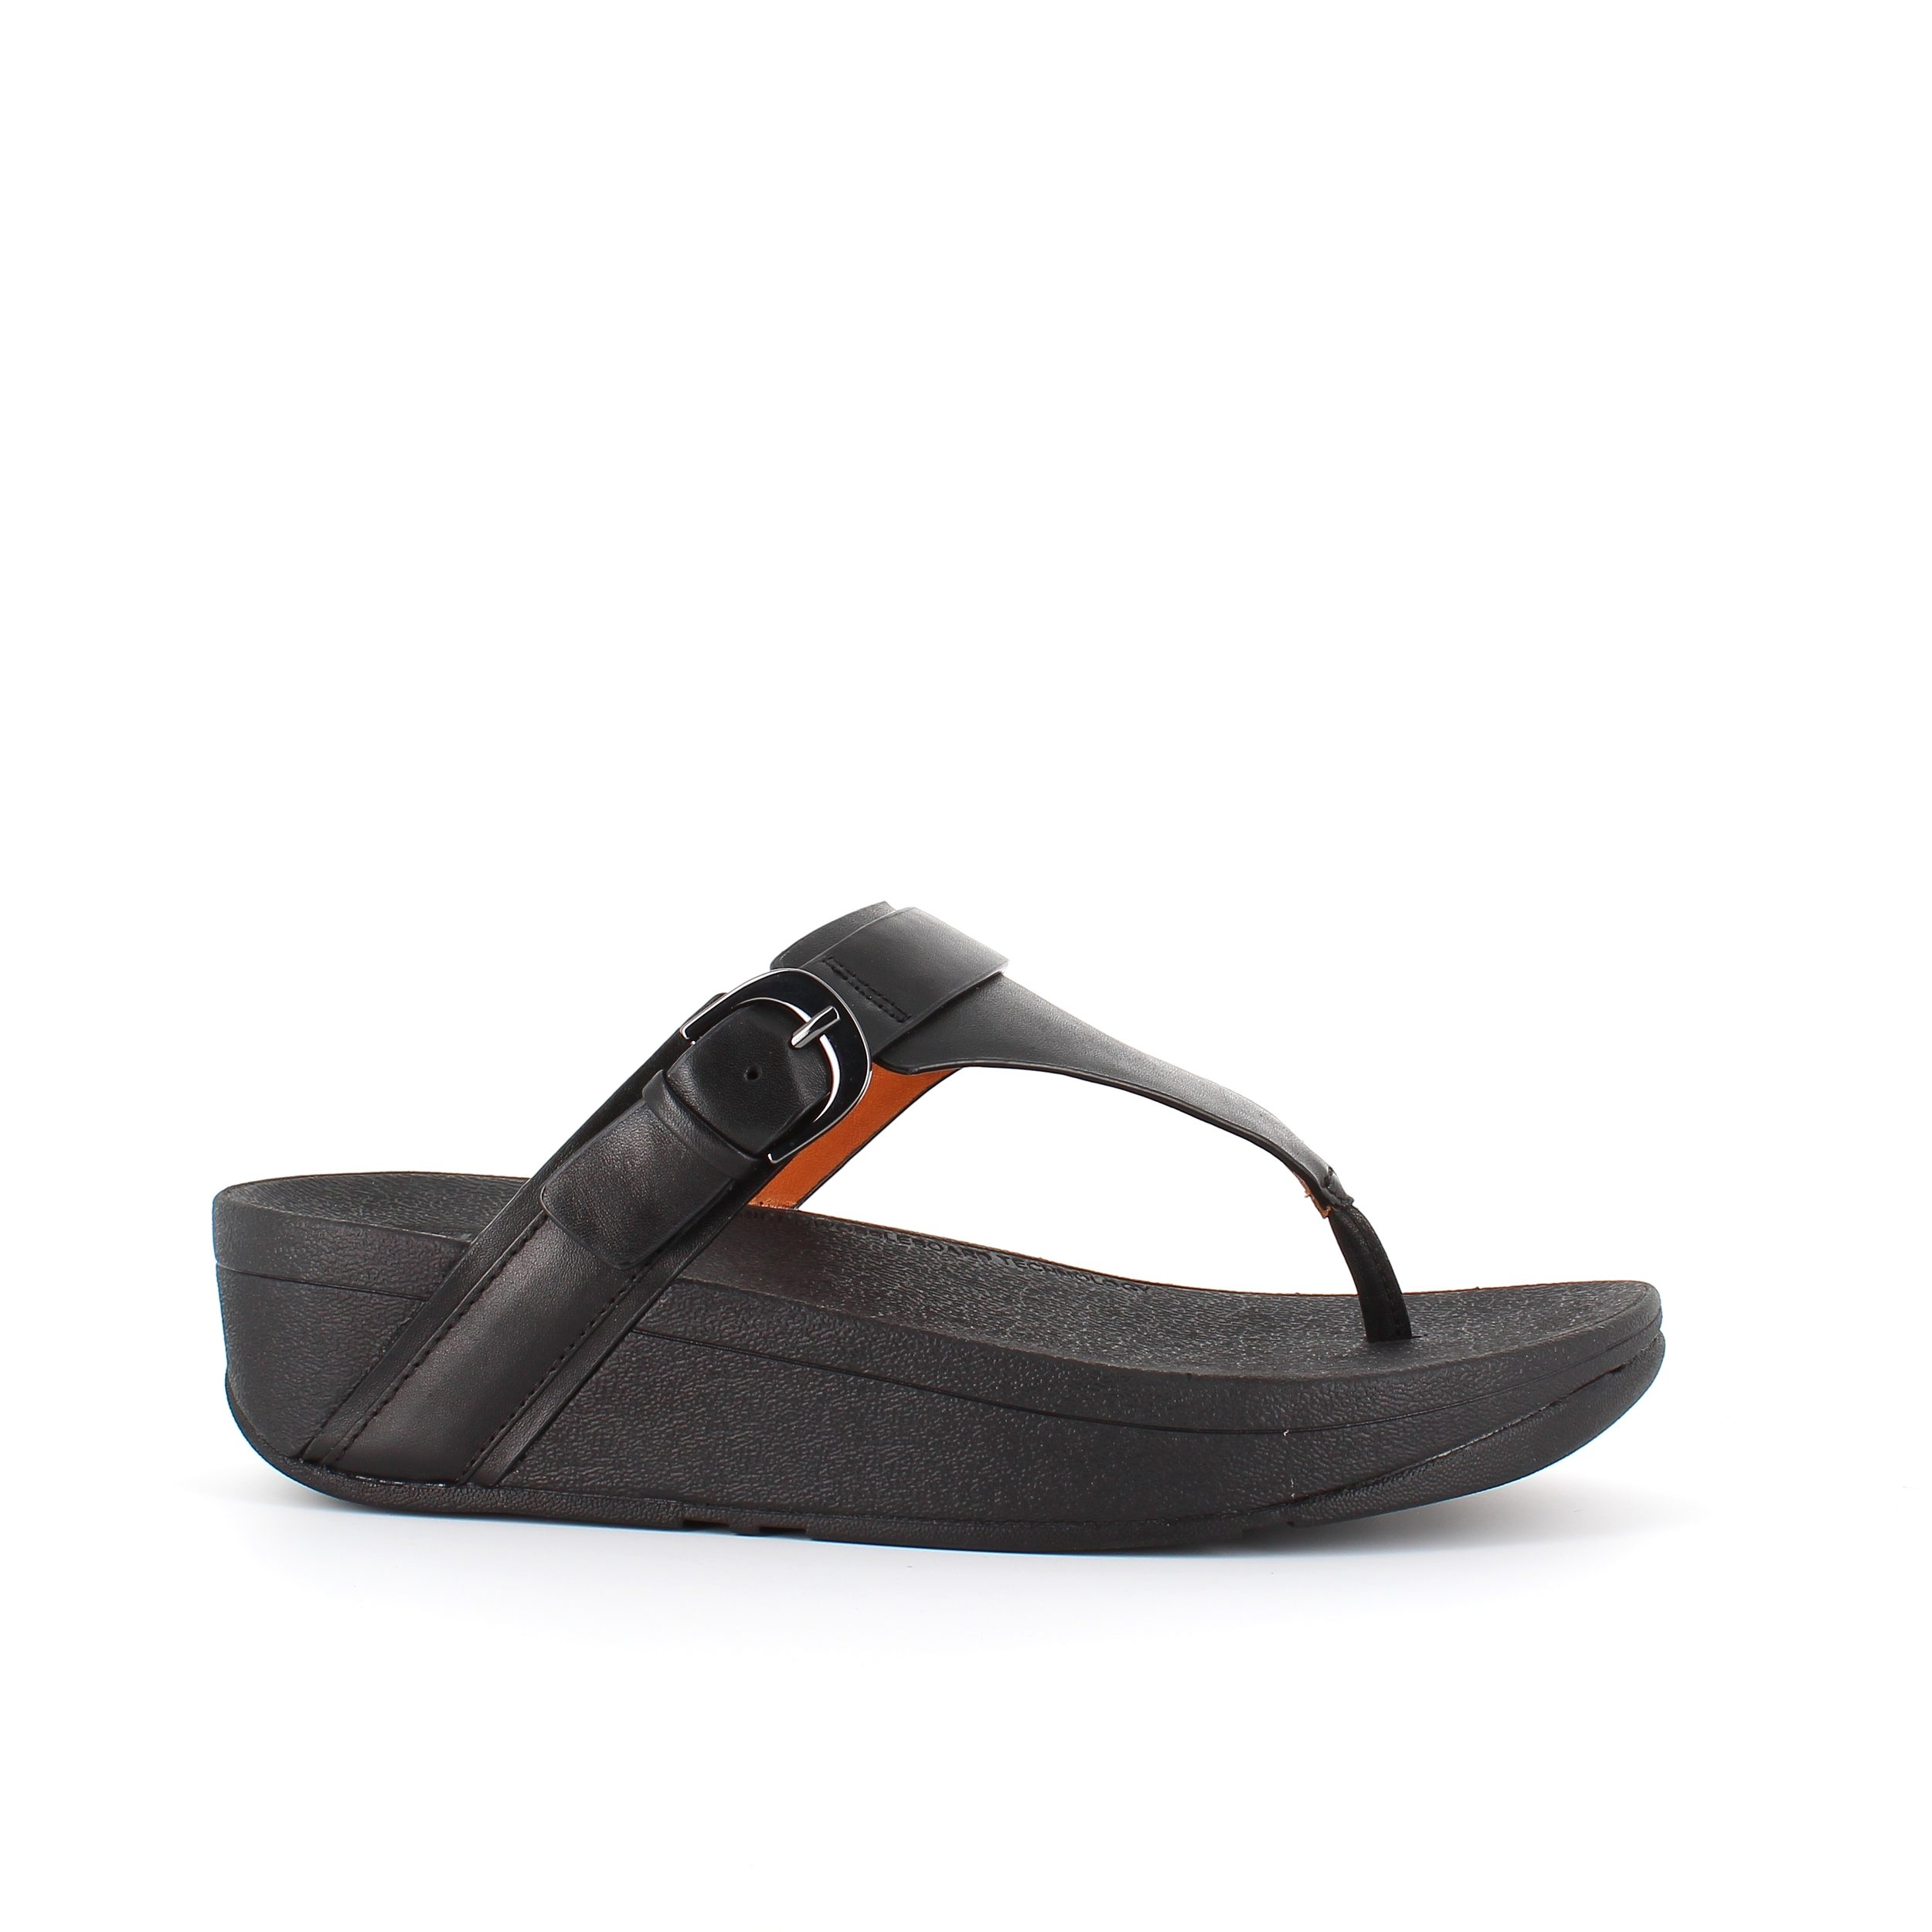 Image of   Edit fitflop sandal i læder - 38